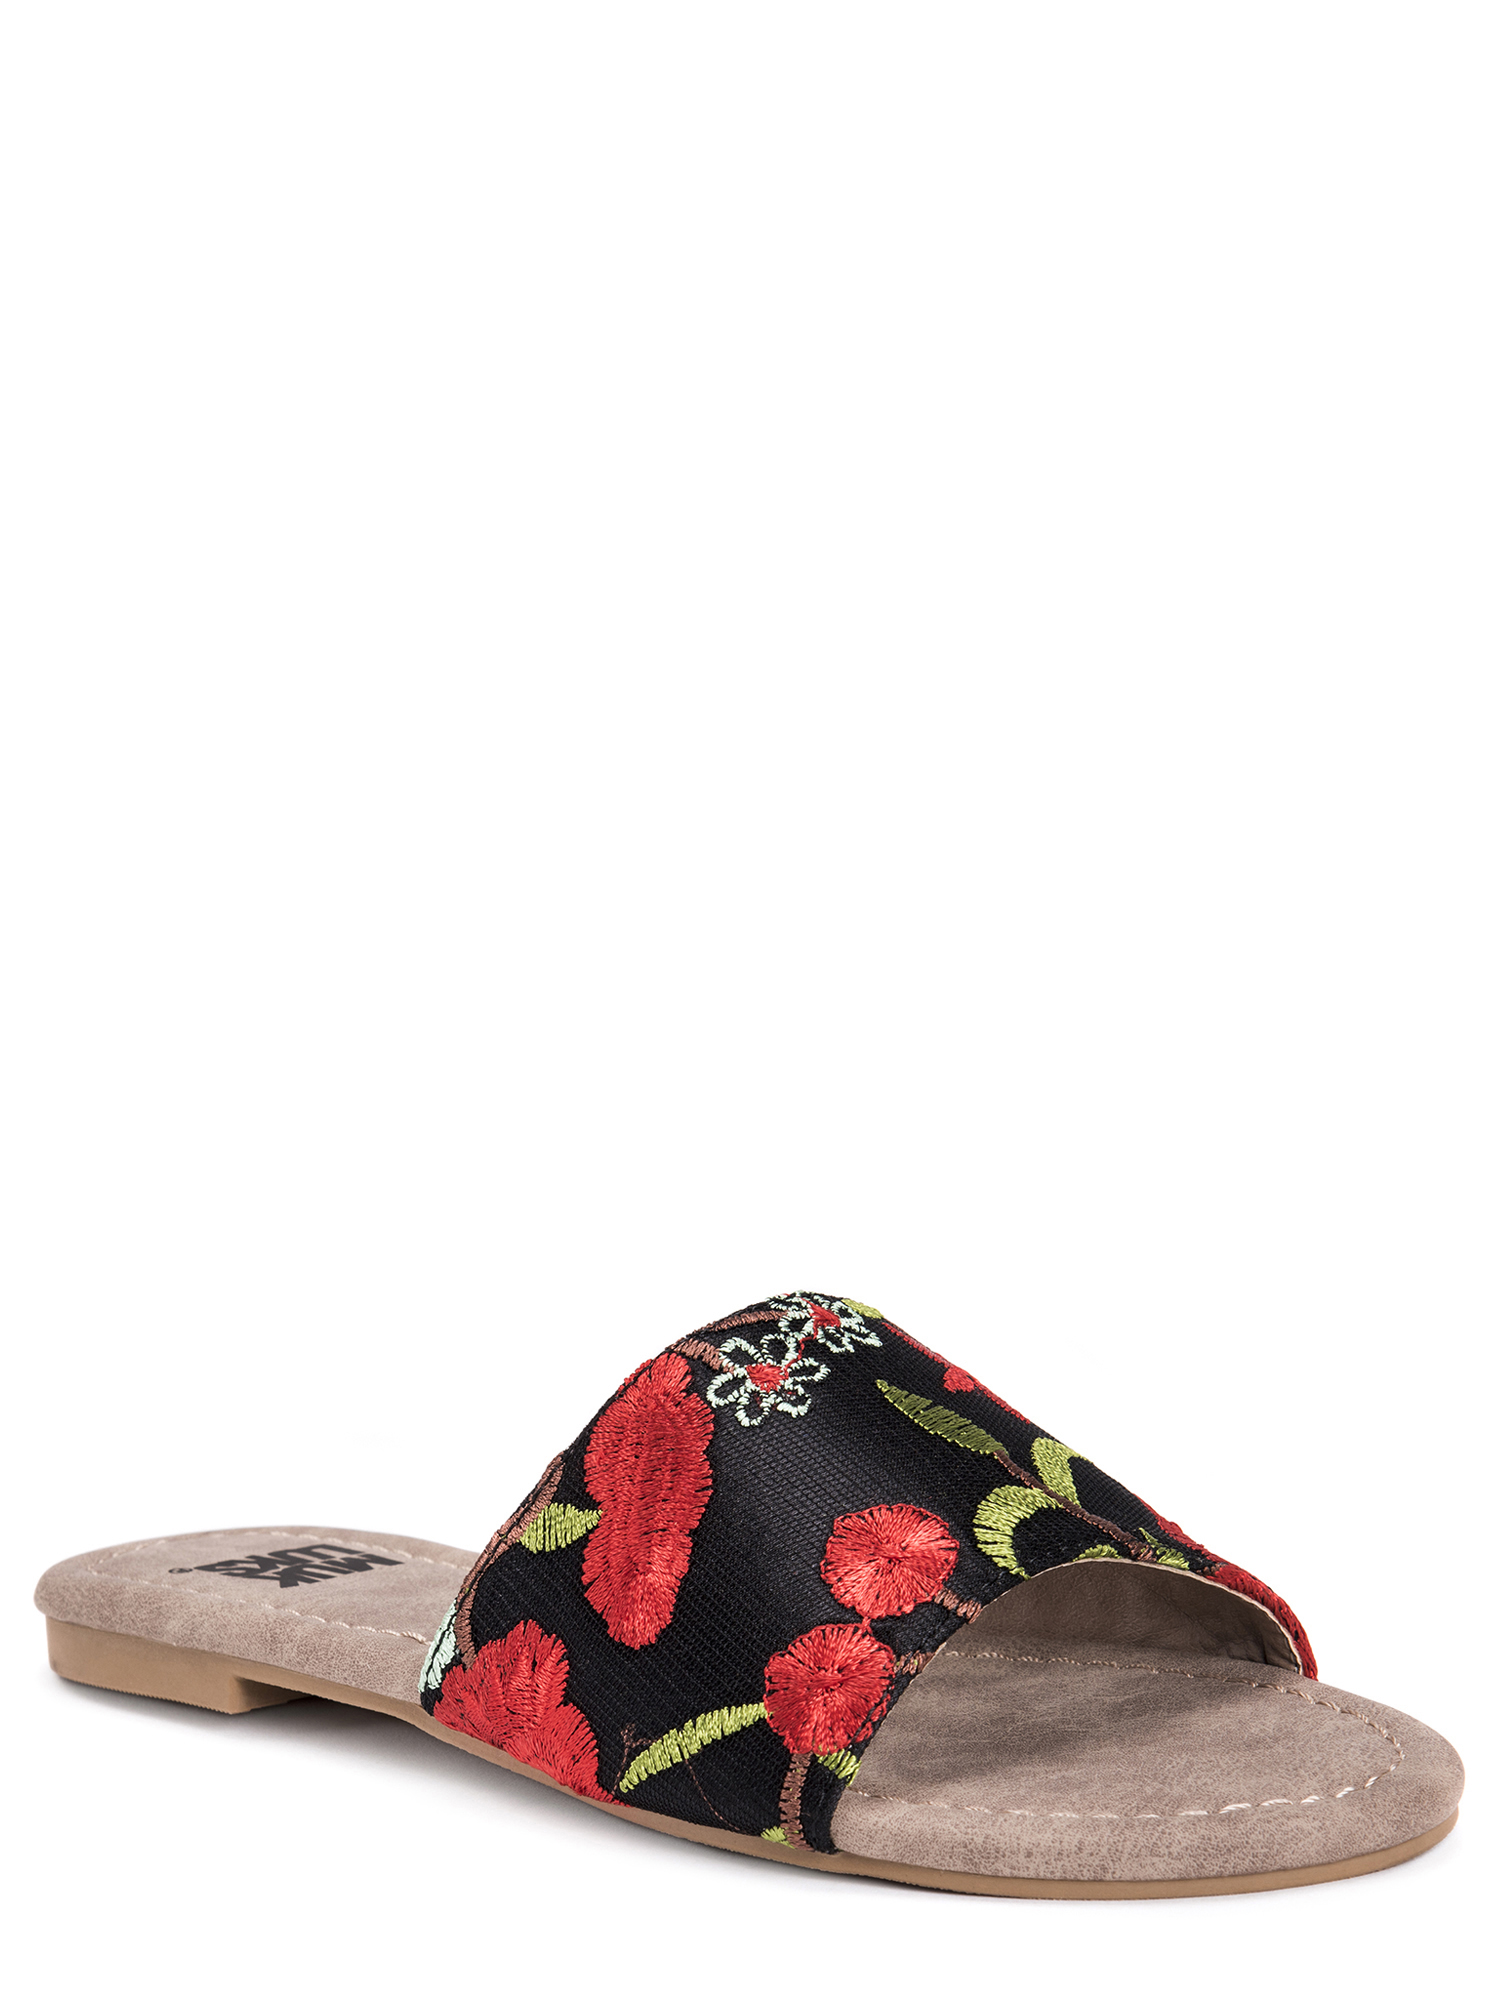 Women's Mellanie Sandals